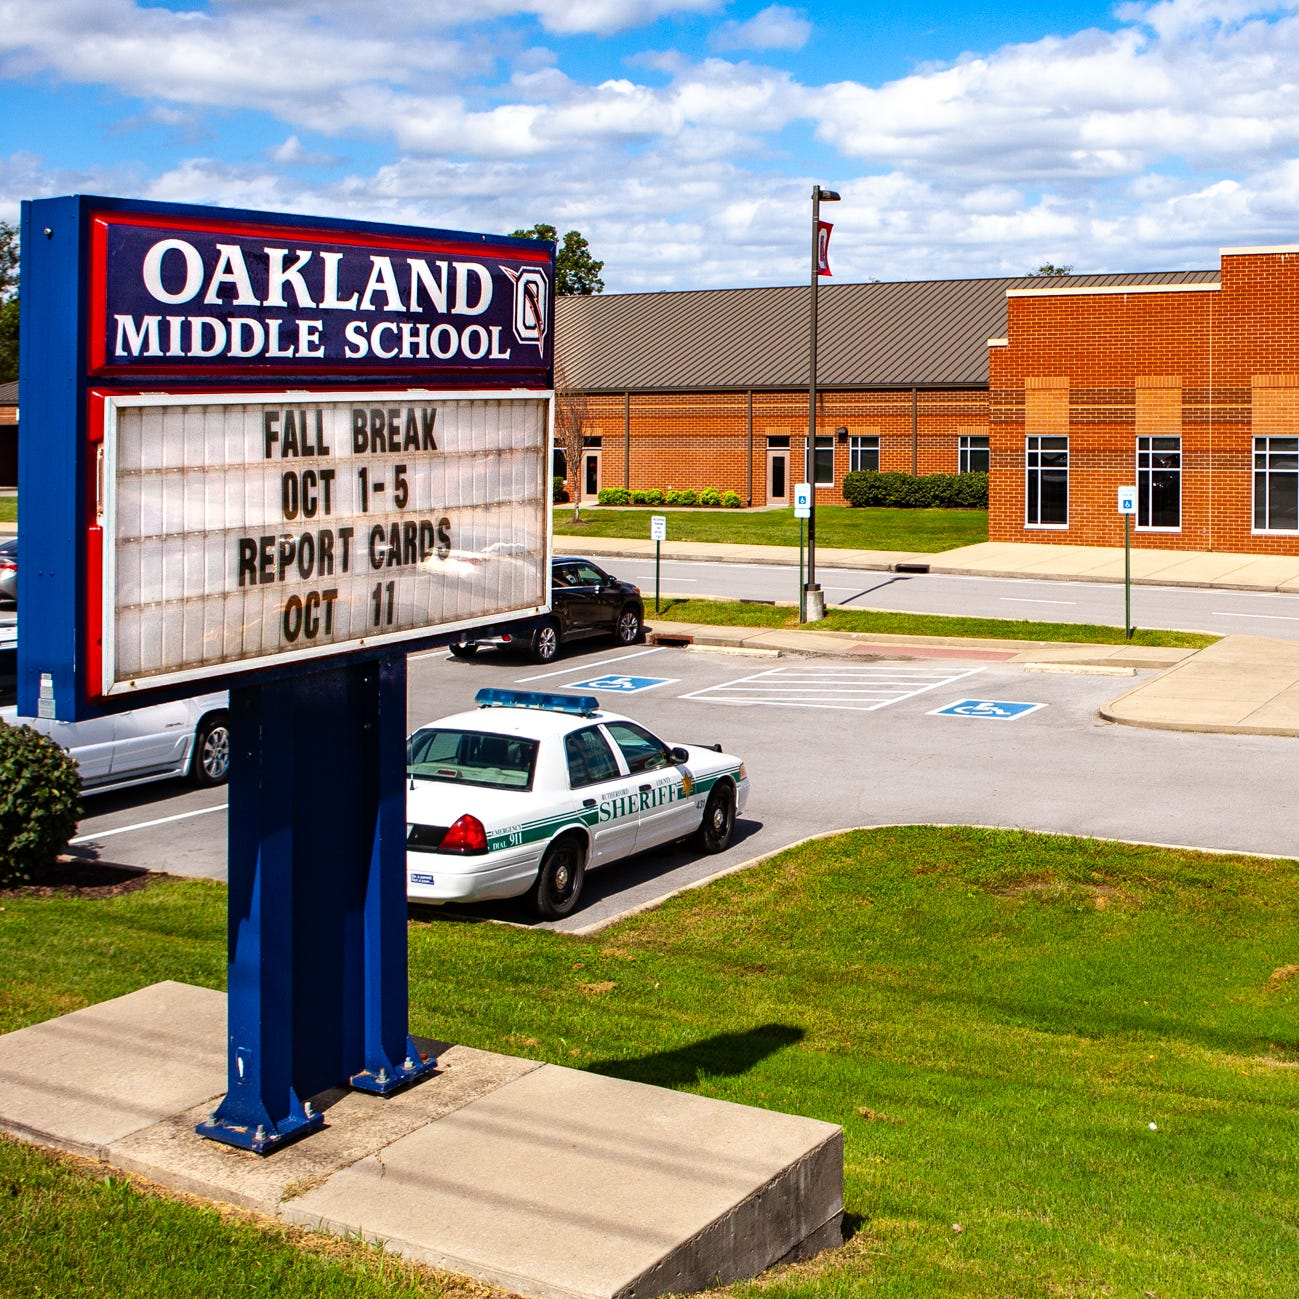 County schools: All clear after Oakland Middle School was placed on code red